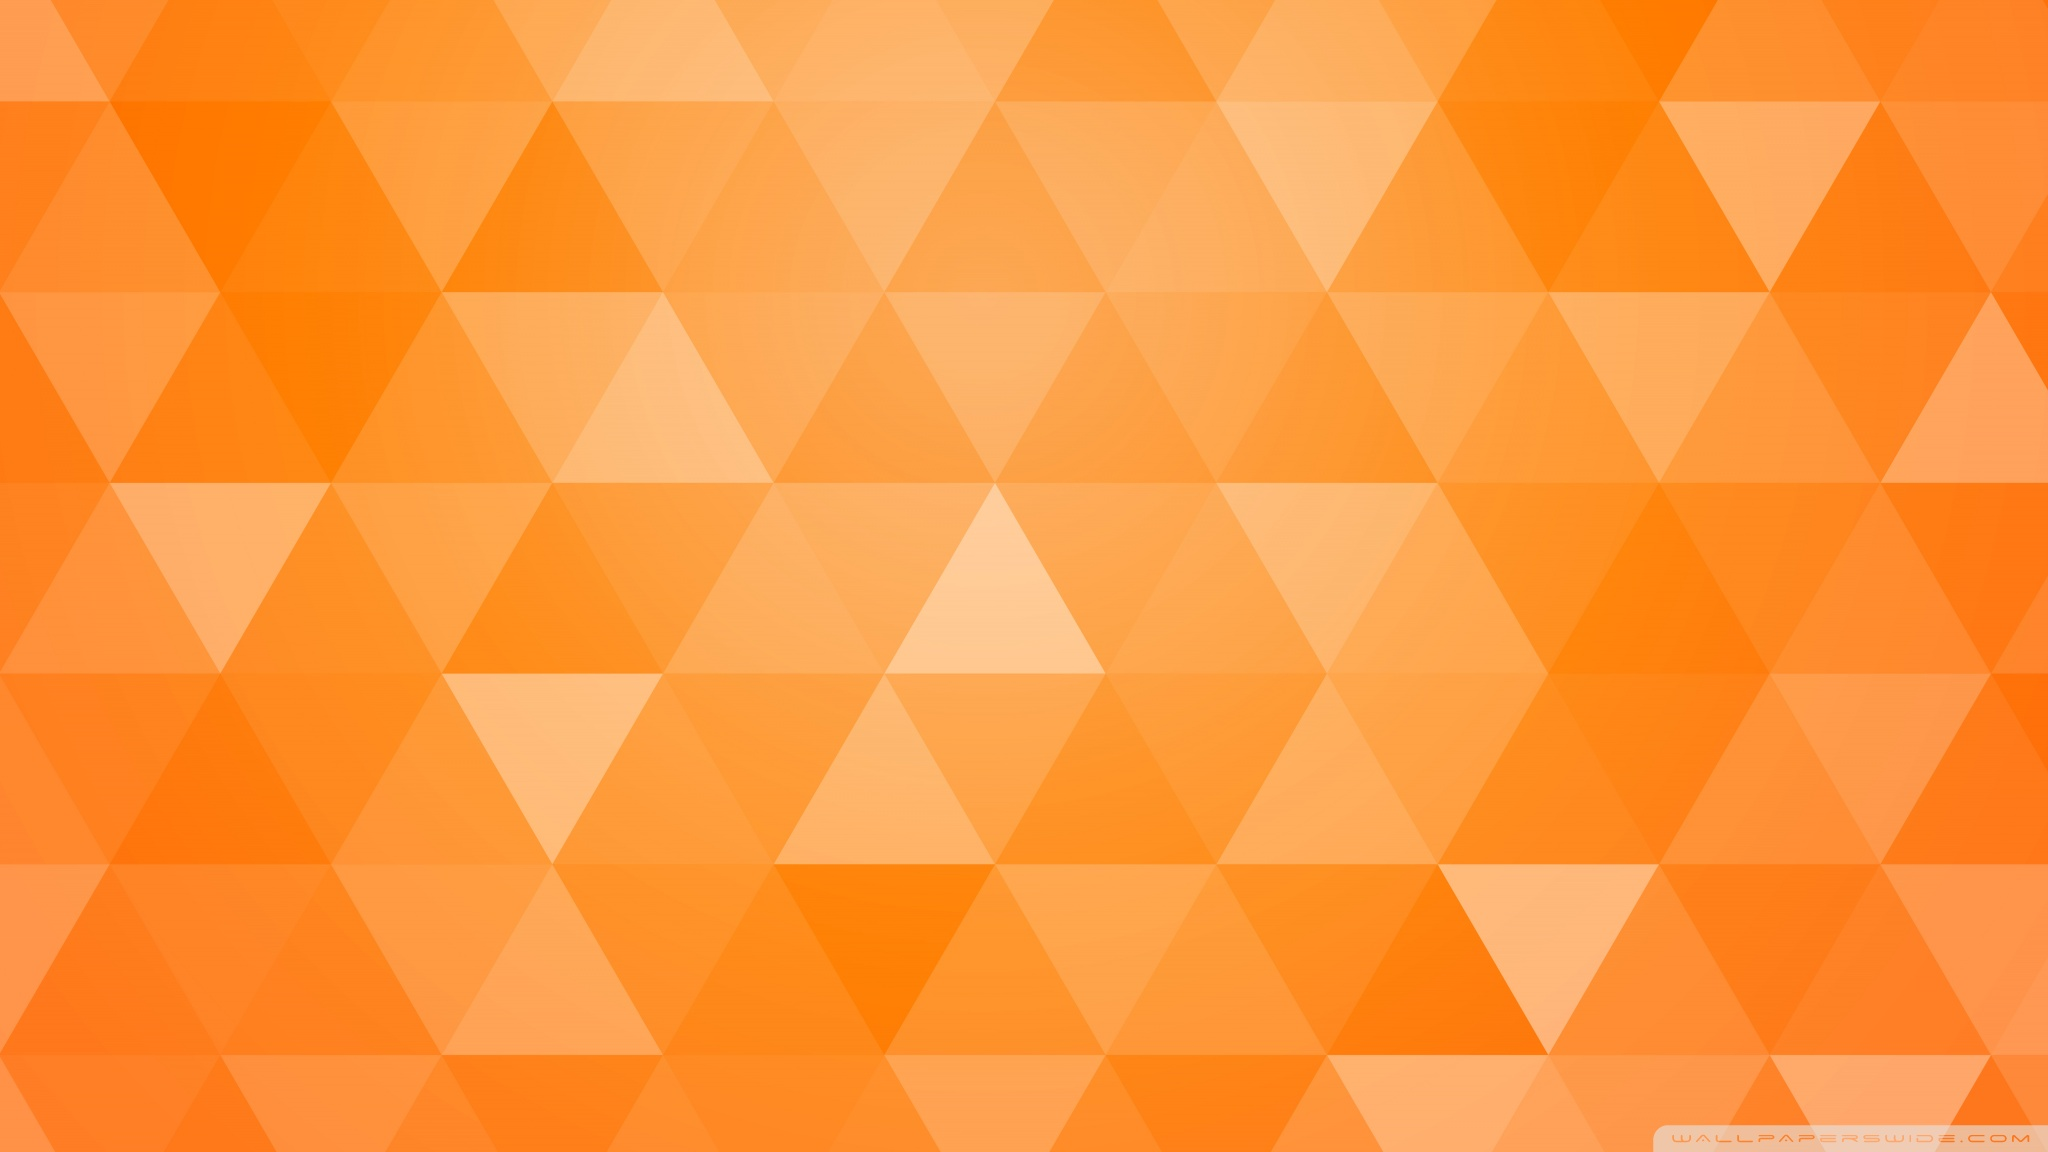 Orange Abstract Geometric Triangle Background Ultra HD Desktop 2048x1152